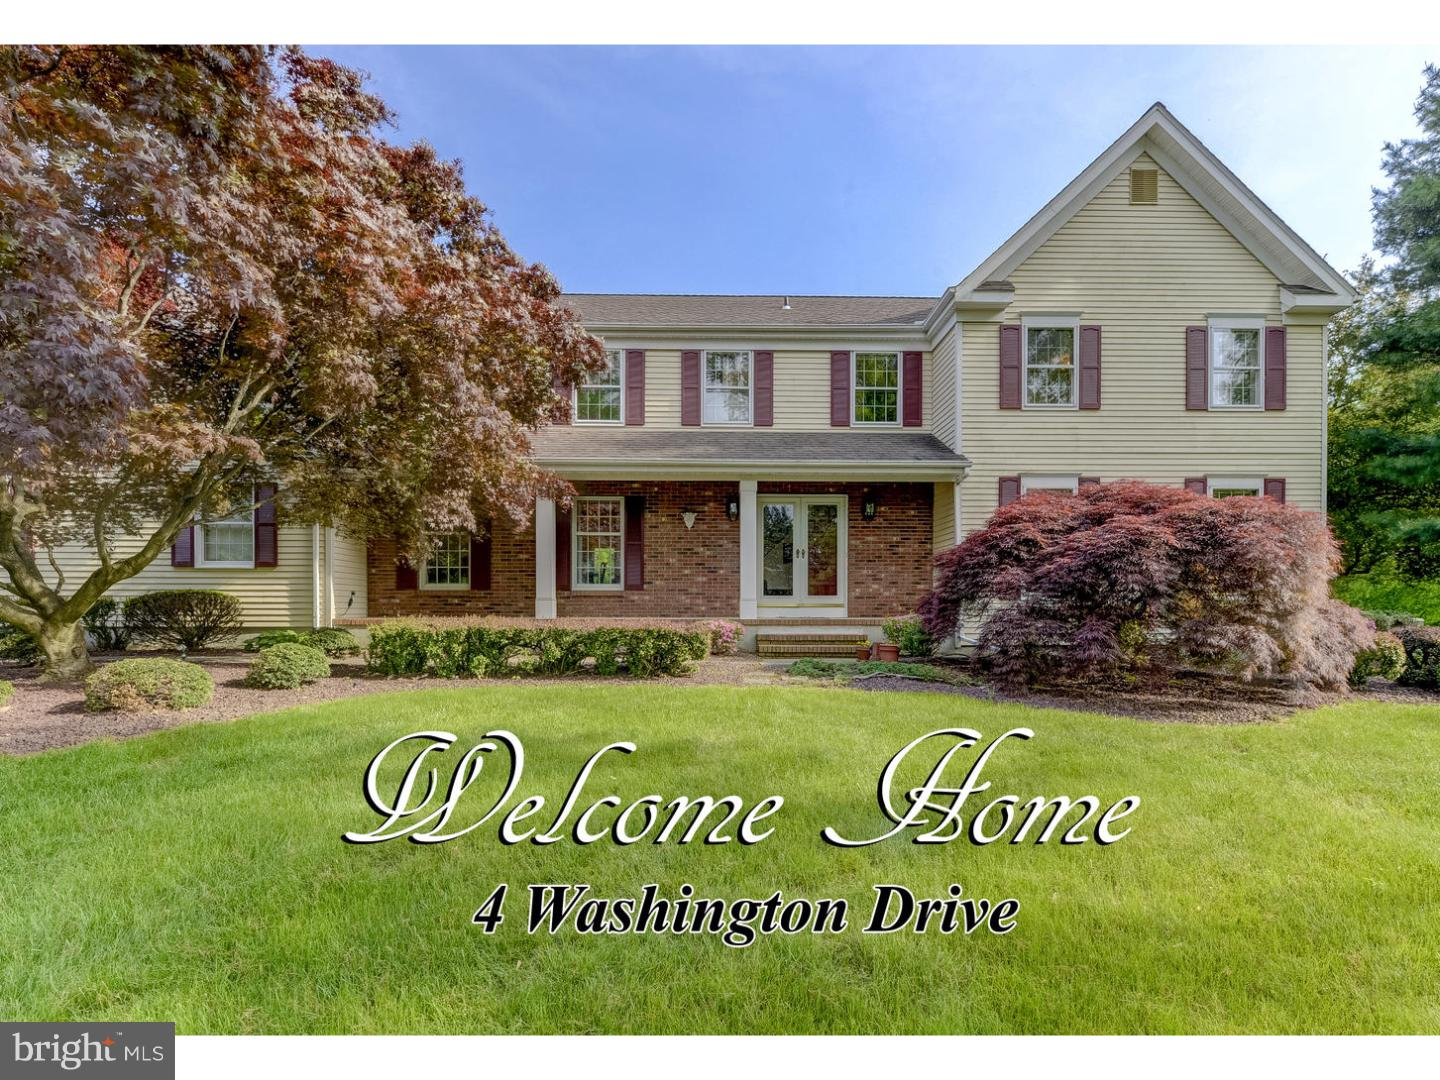 4 WASHINGTON DRIVE, CRANBURY, NJ 08512